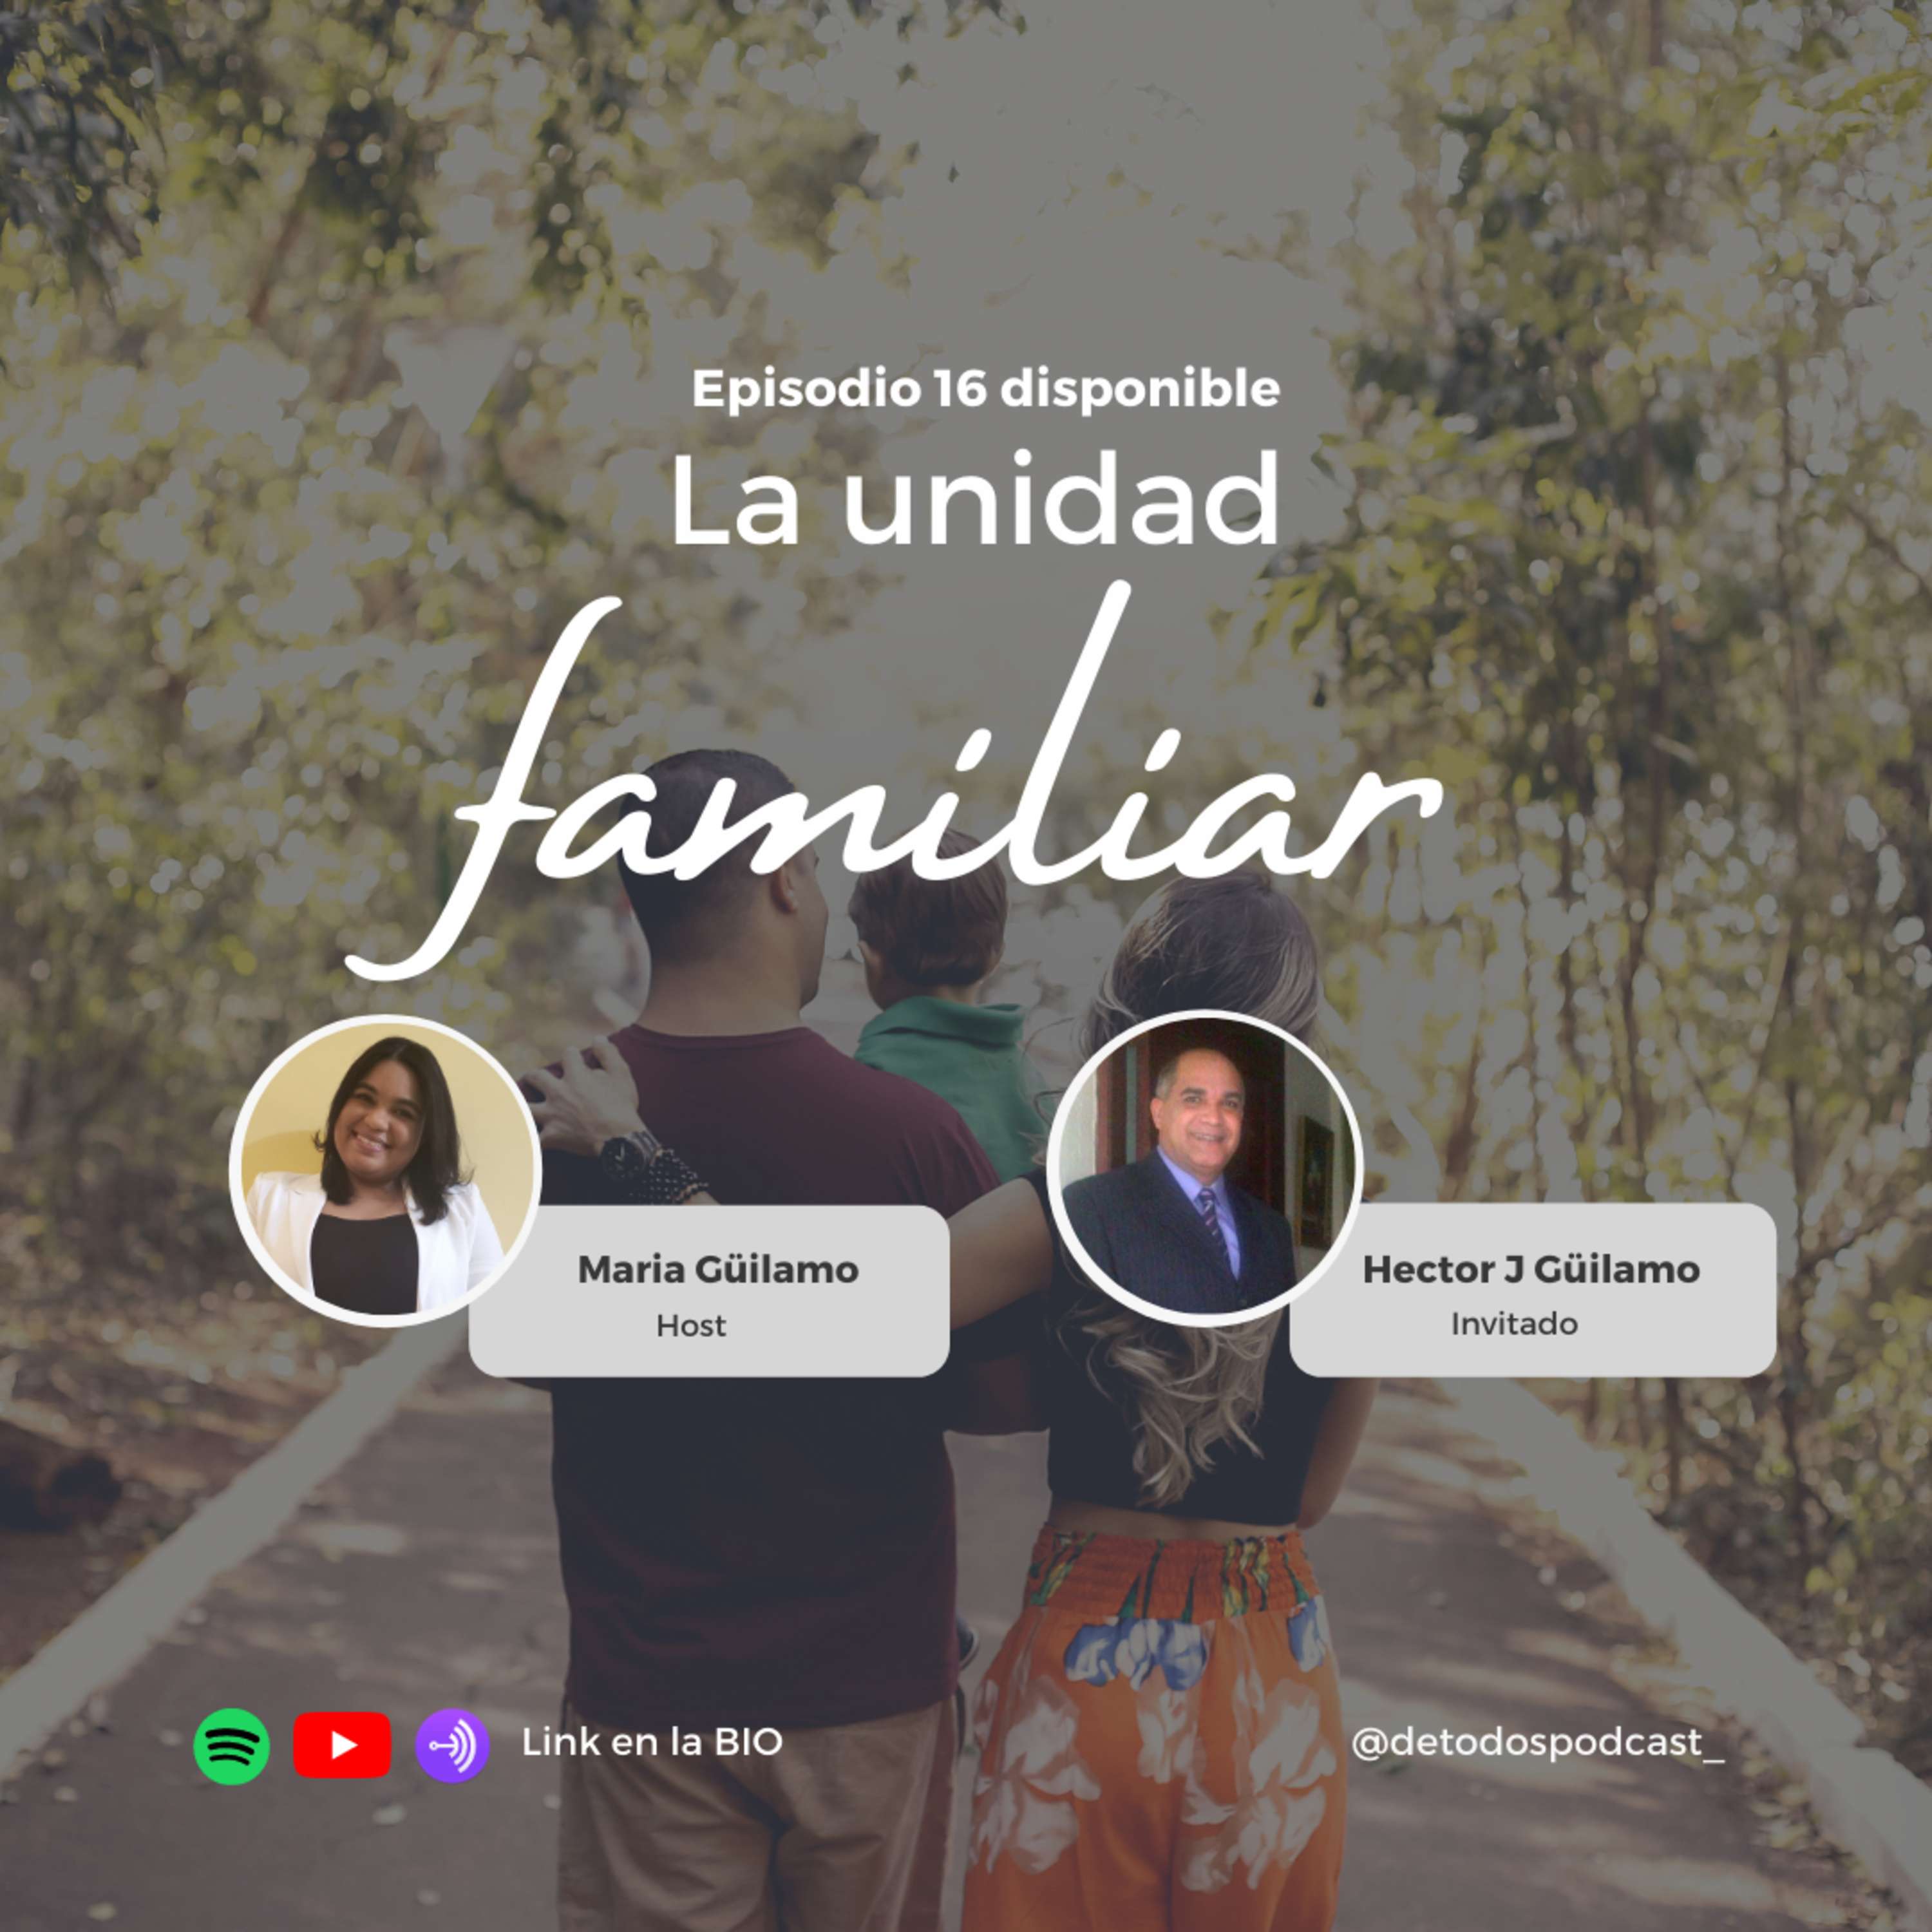 La unidad familiar- Episodio 16